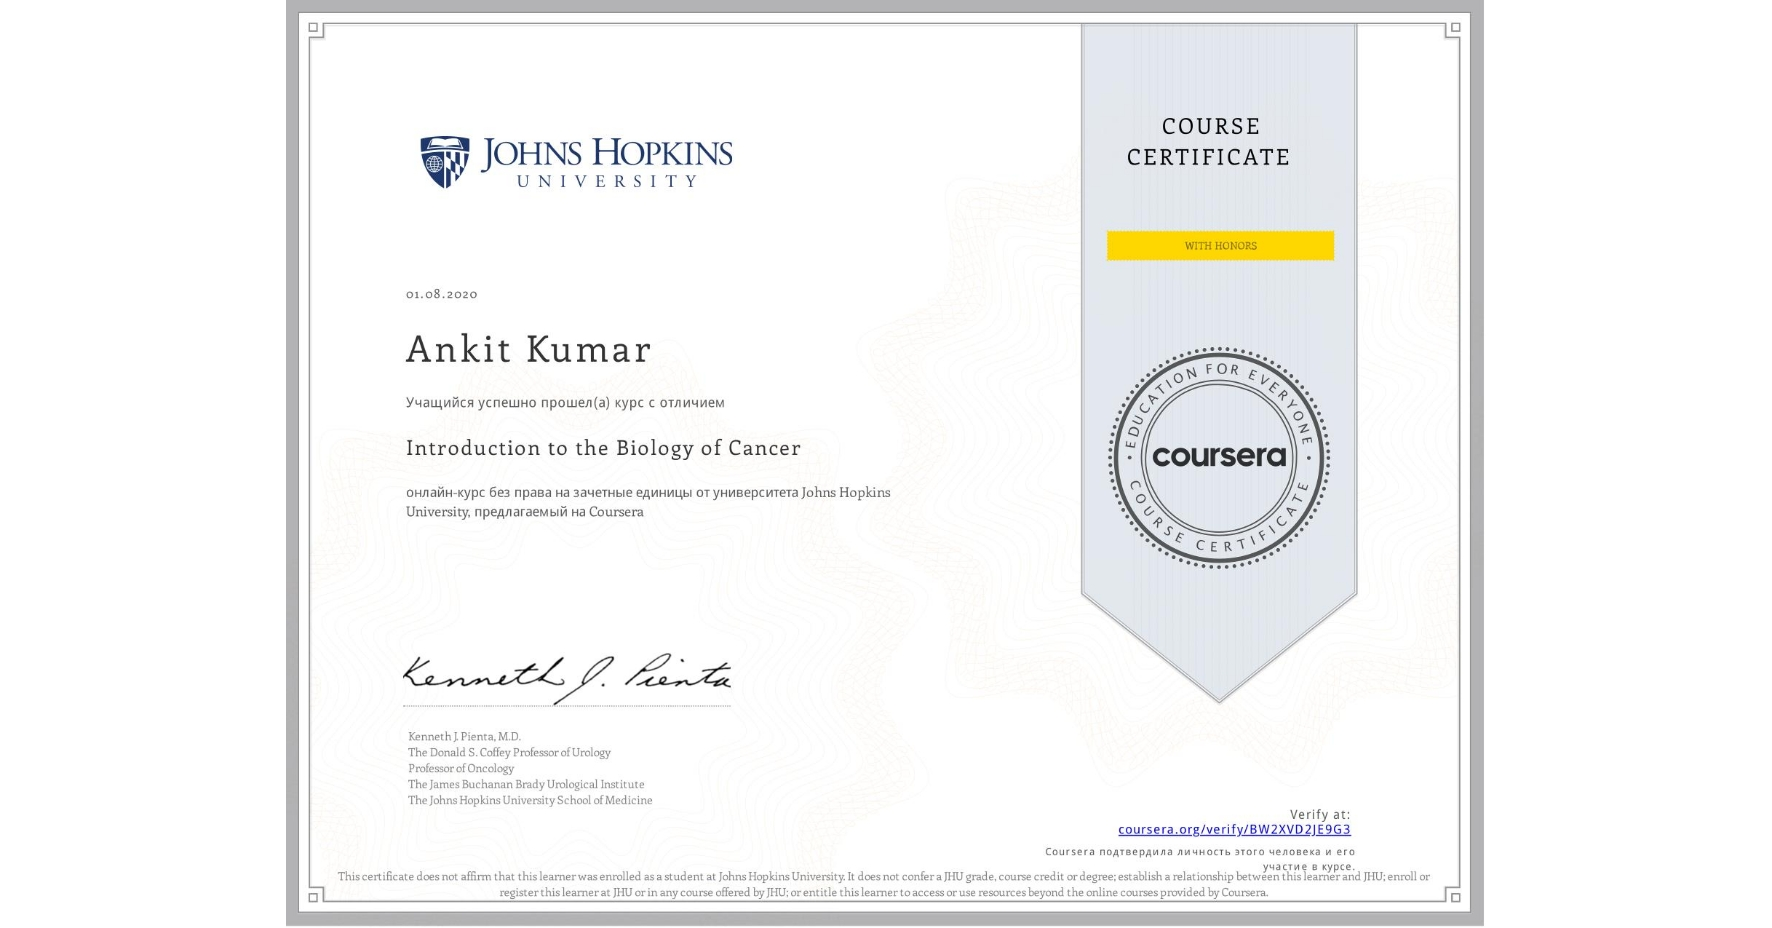 View certificate for Ankit Kumar, Introduction to the Biology of Cancer, an online non-credit course authorized by Johns Hopkins University and offered through Coursera